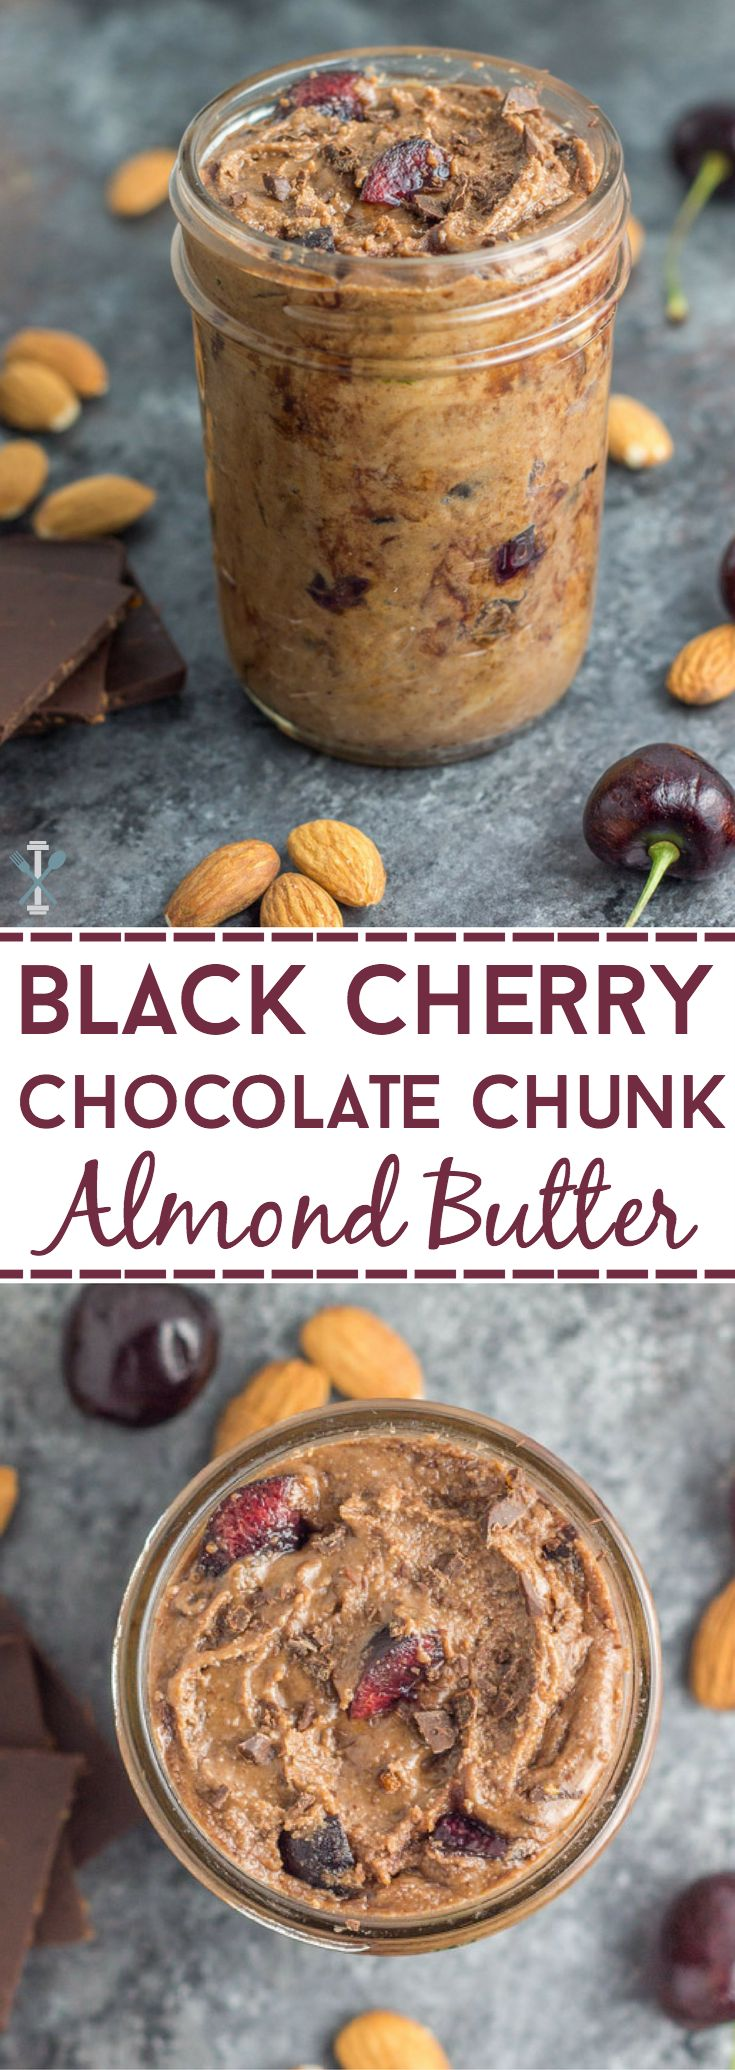 A decadent treat that is paleo and vegan - take your homemade almond butter to the next level with this easy, homemade black cherry chocolate chunk nut butter